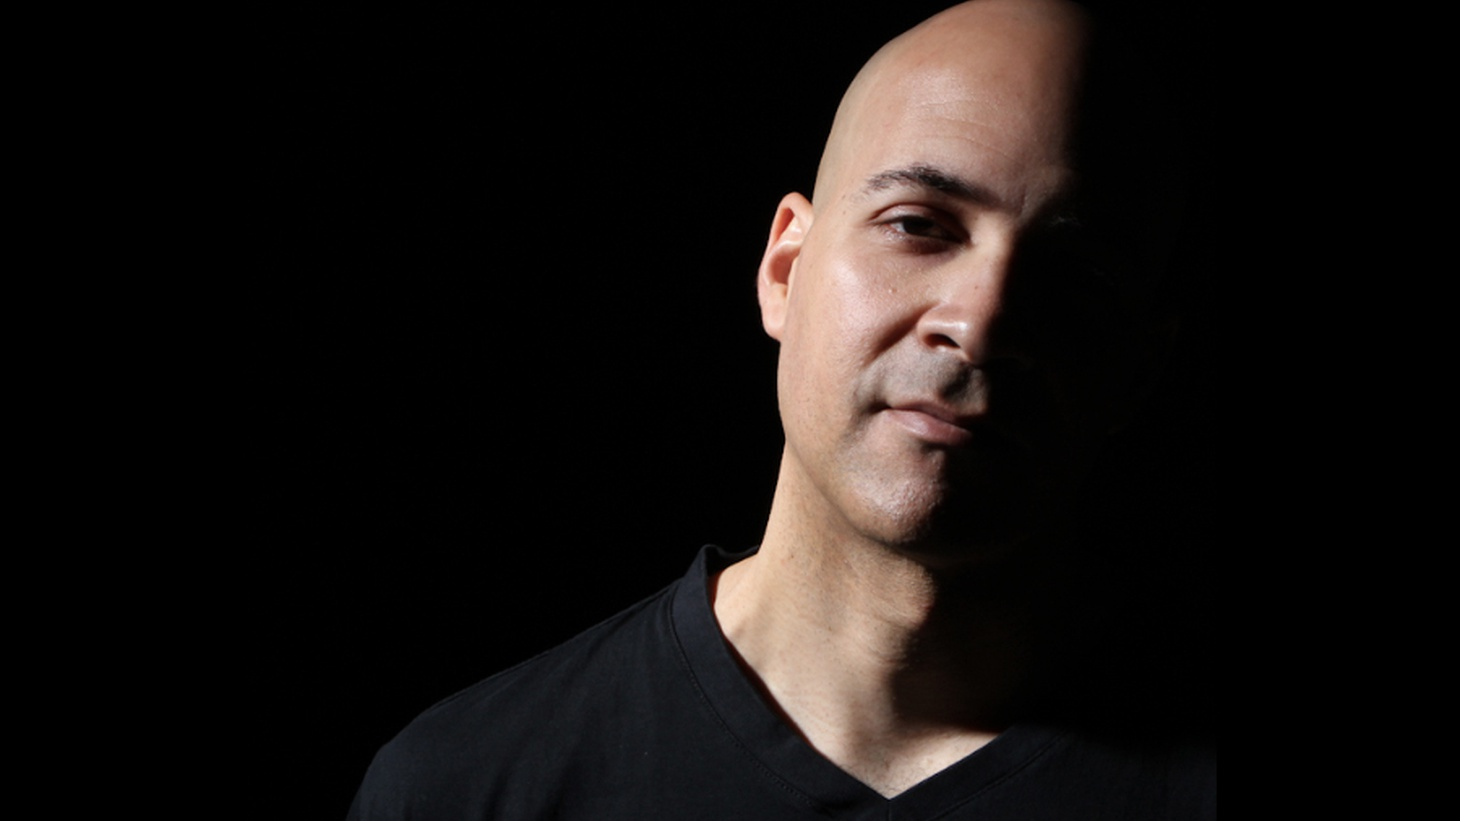 Direct from New York - DJ/producer Rich Medina drops into the City for a guest DJ set and discussion on his upcoming projects, the current state of black pop music, and his ridiculous record collection.